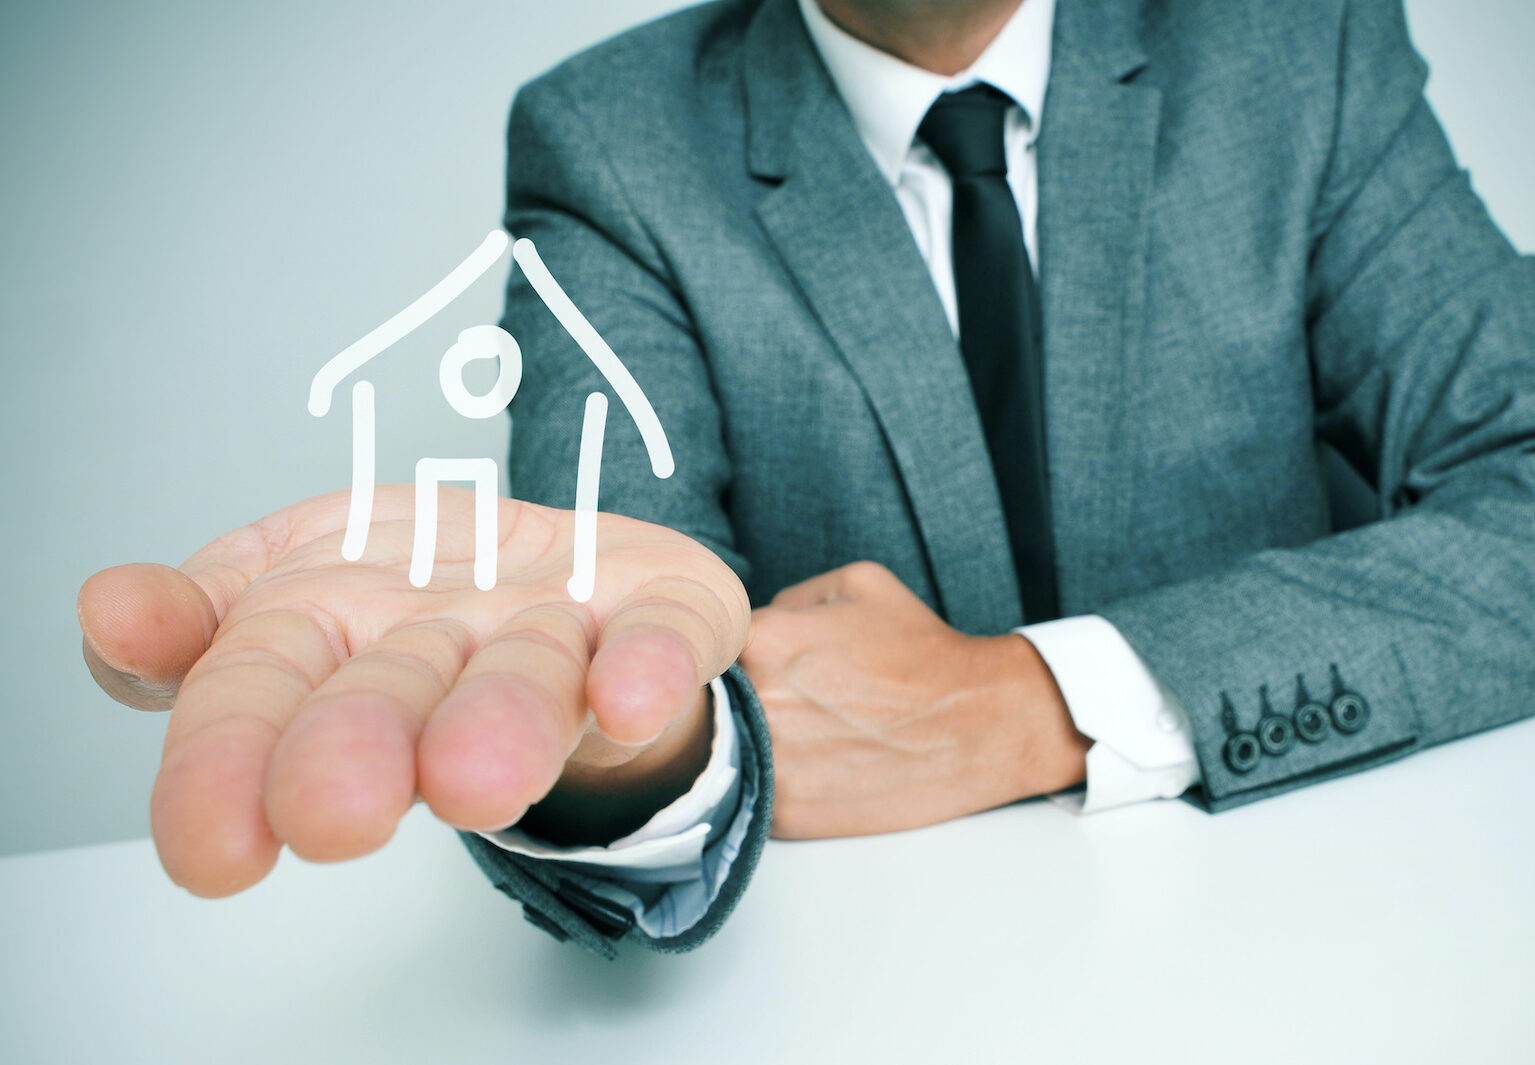 Public adjuster or private adjuster holding a symbol of a house in hand